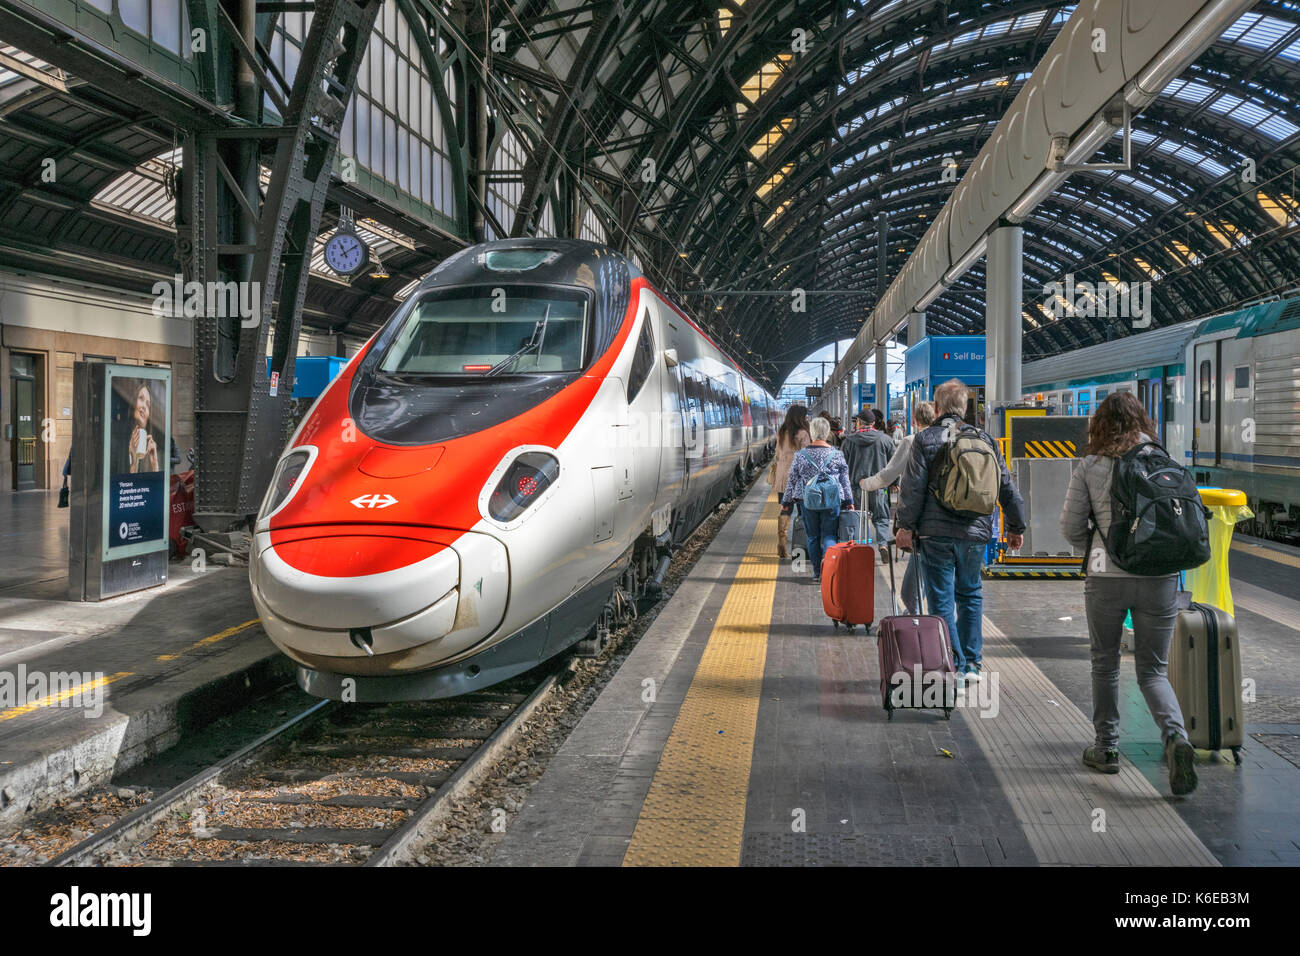 ITALY HIGH SPEED TRAINS AND PASSENGERS BOARDING AT MILAN RAILWAY STATION - Stock Image